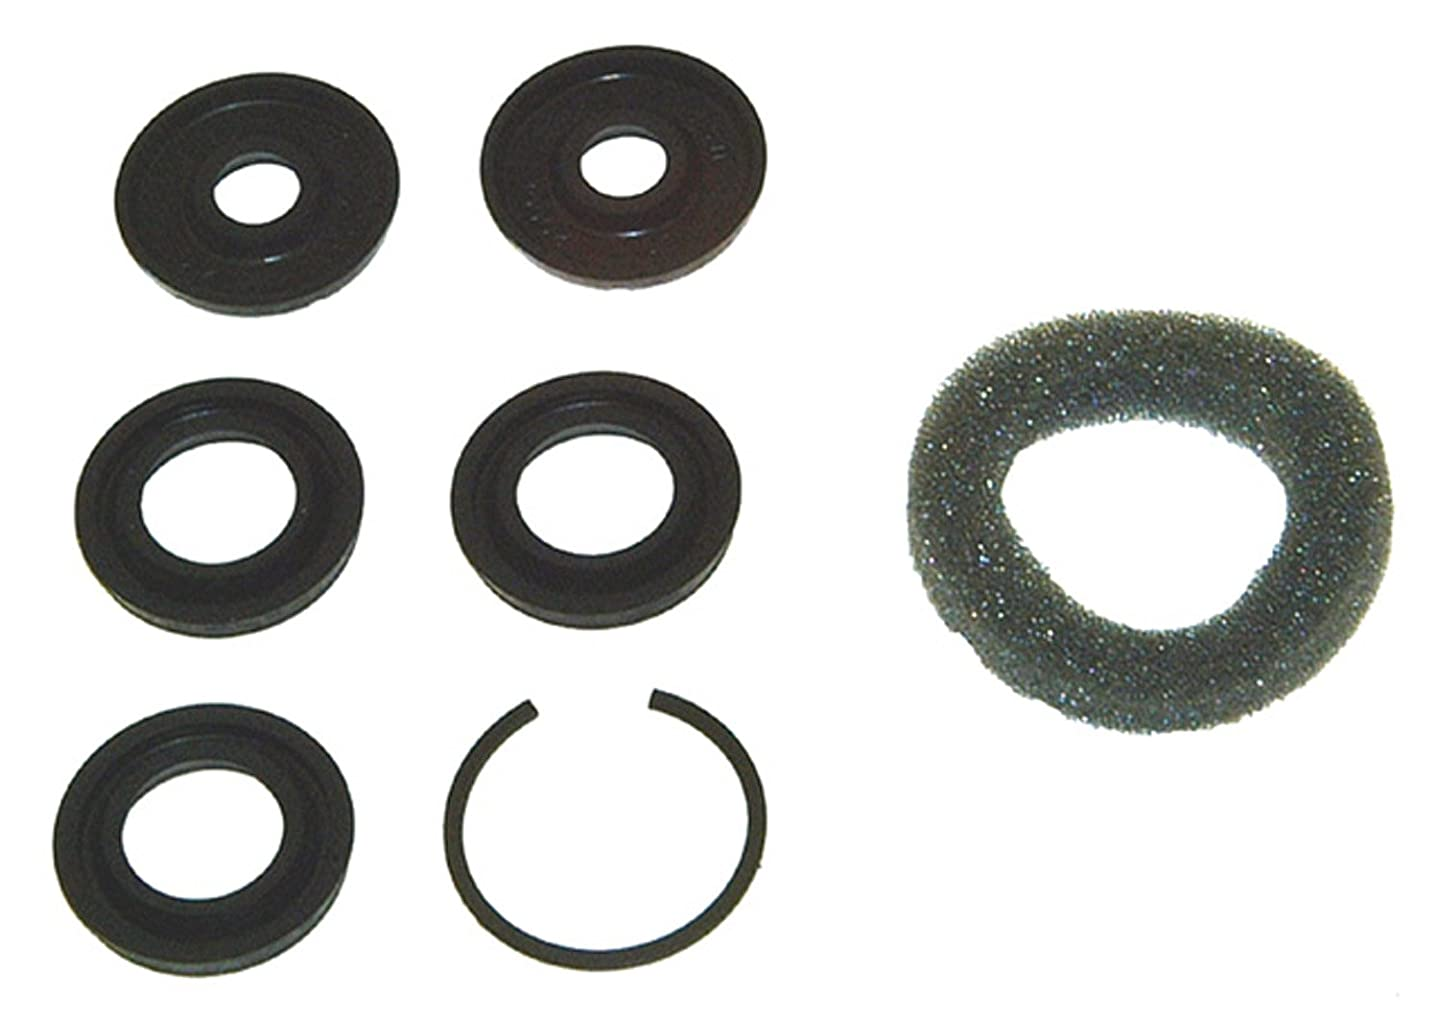 ACDelco 18G1185 Professional Brake Master Cylinder Repair Kit with Seals